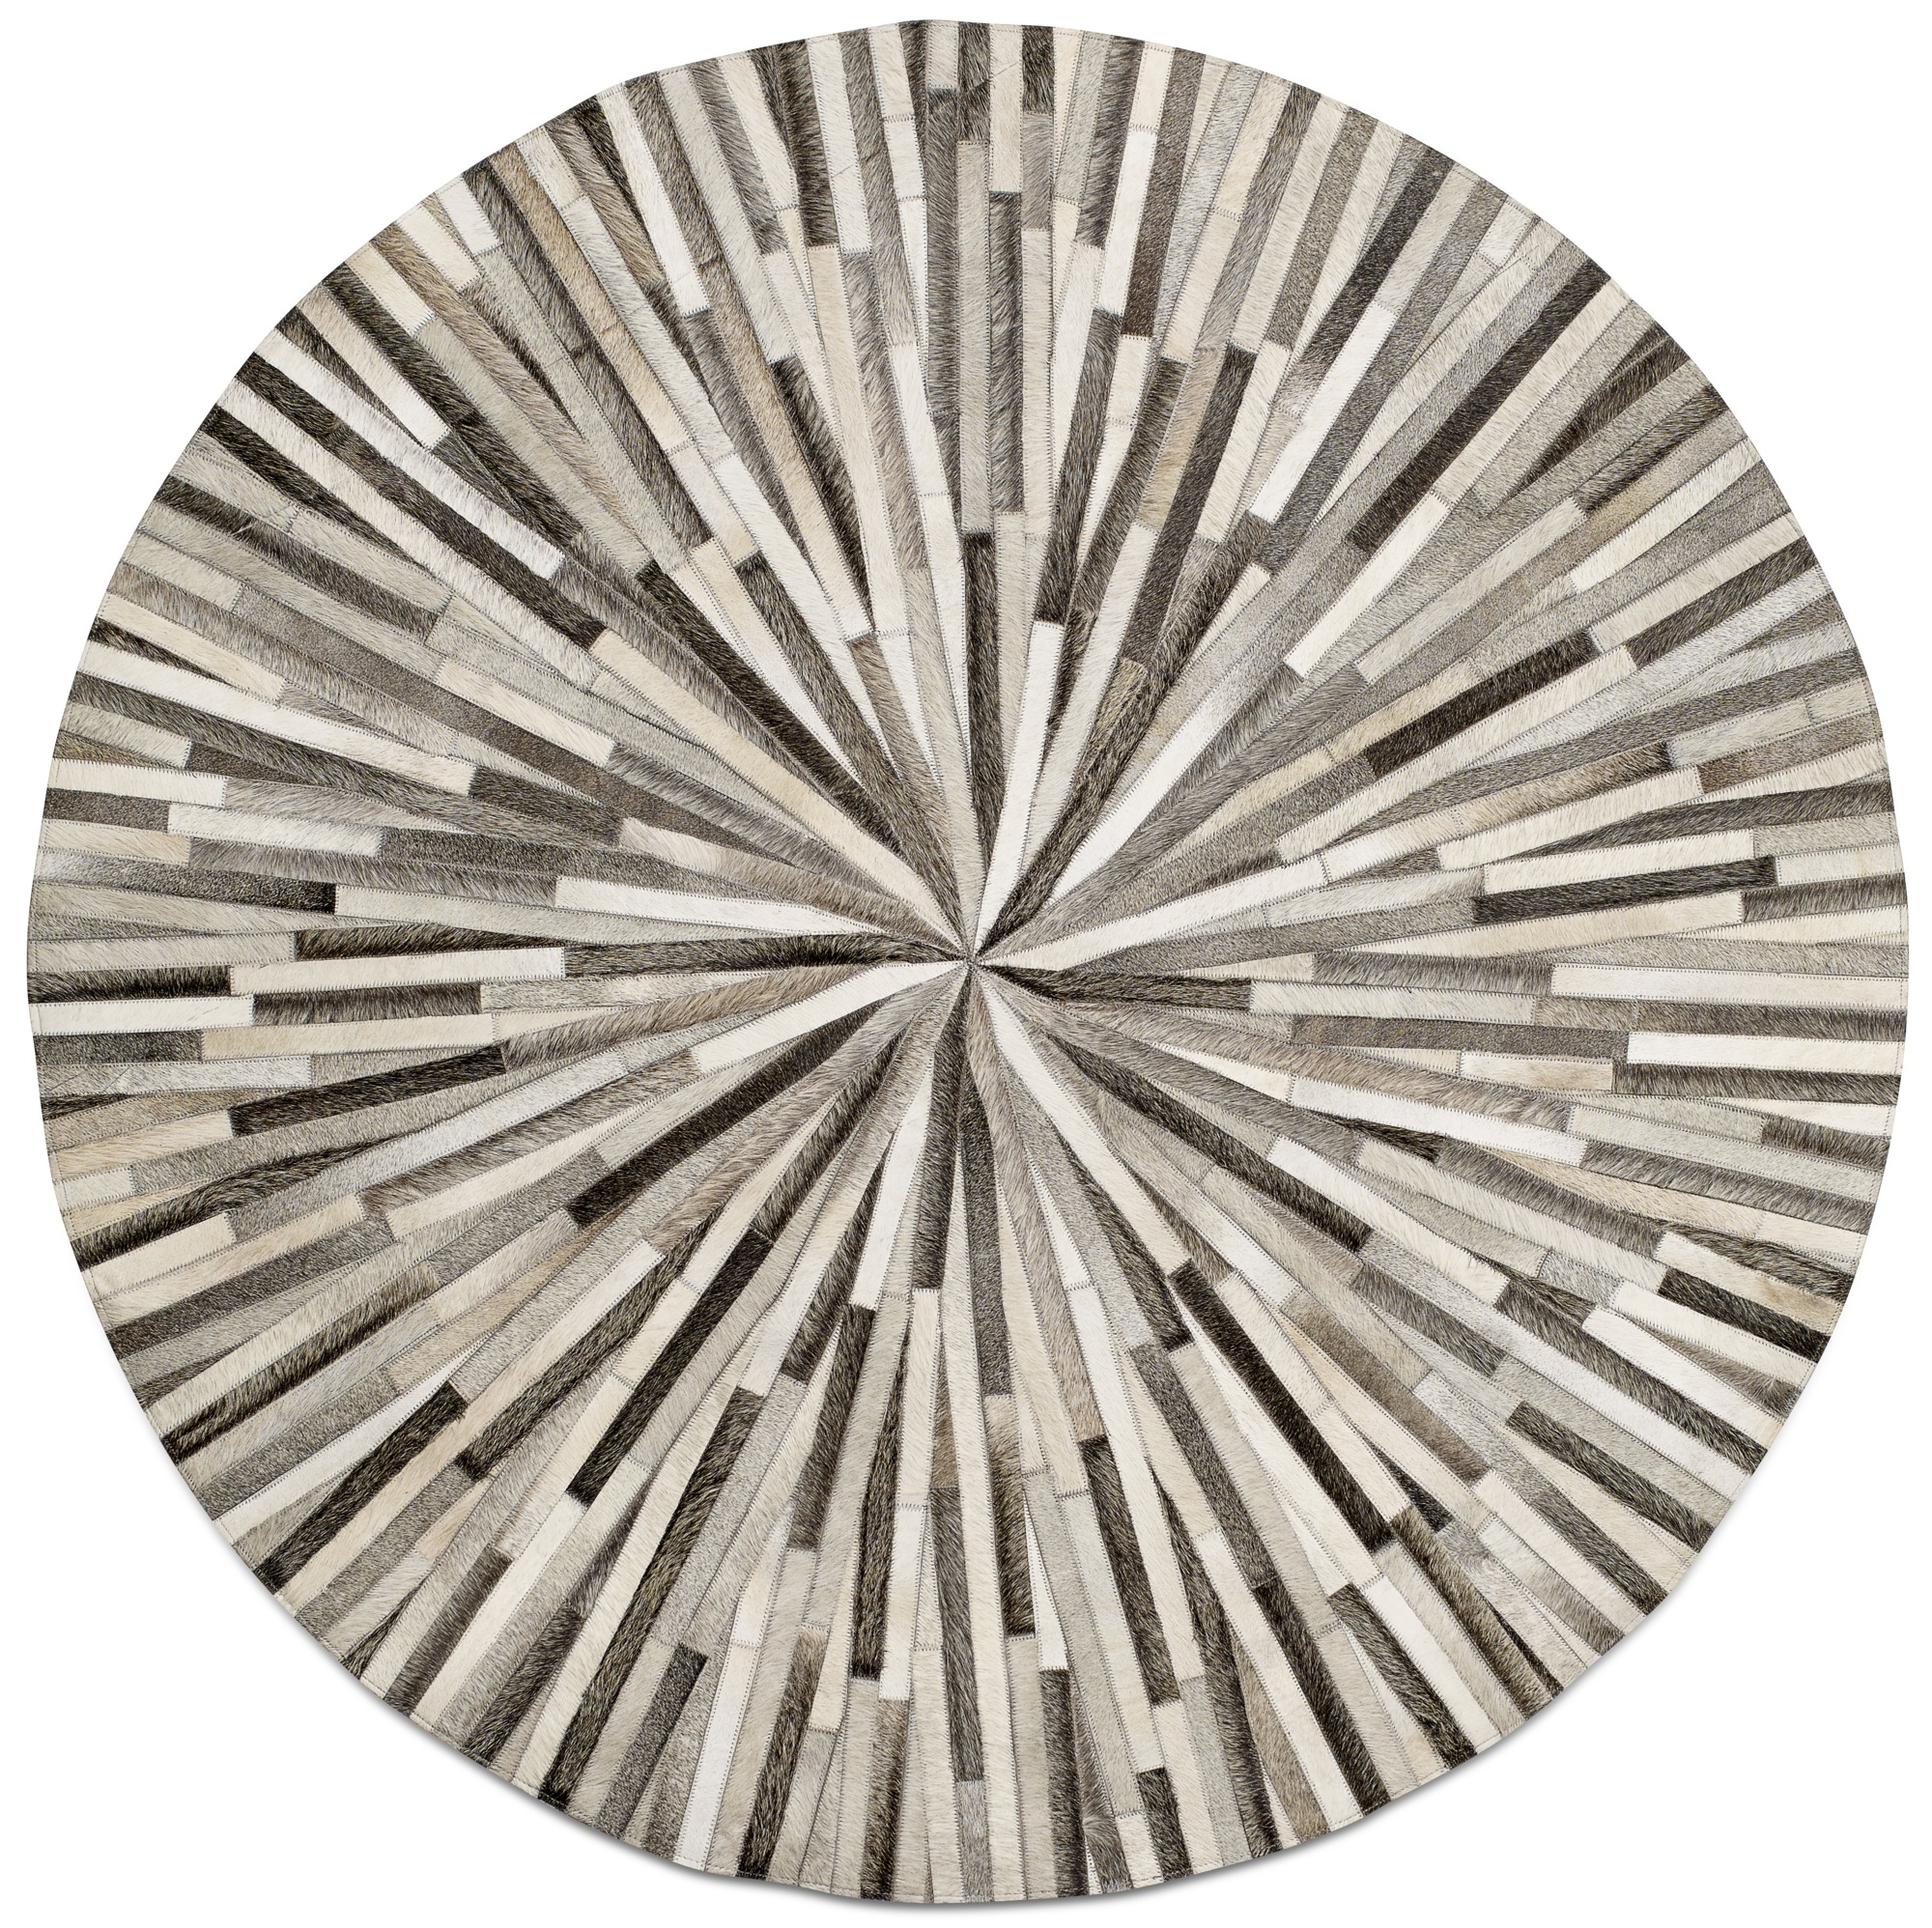 Grey Cowskin 150cm Diameter Contemporary Round Rugs Quality From Inside Round Mats Rugs (Image 5 of 15)